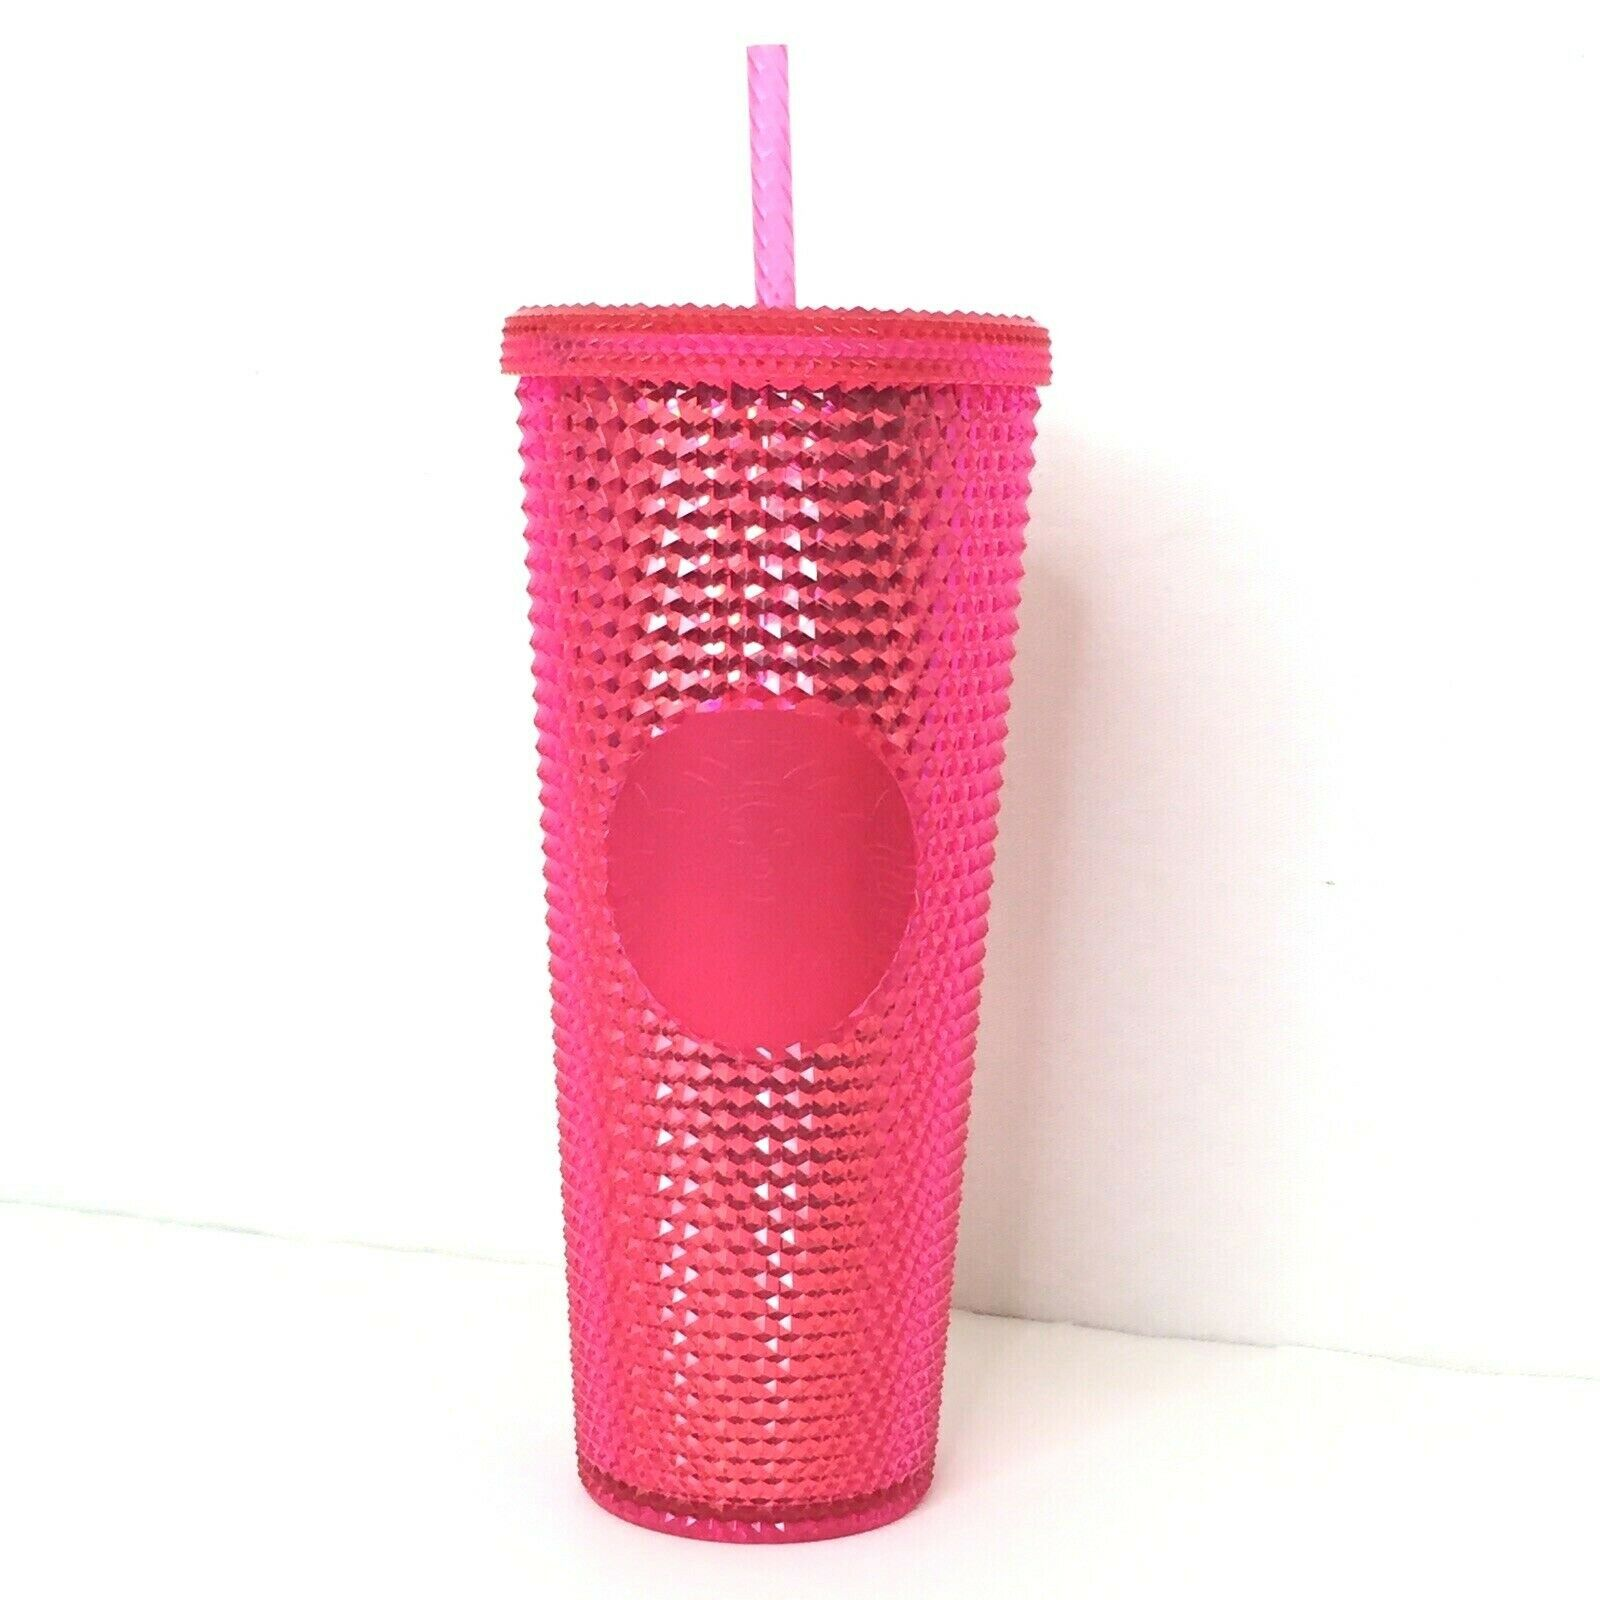 Starbucks 2019 Holiday Pink Red Studded Tumbler Christmas 24 oz Lid & Straw NEW